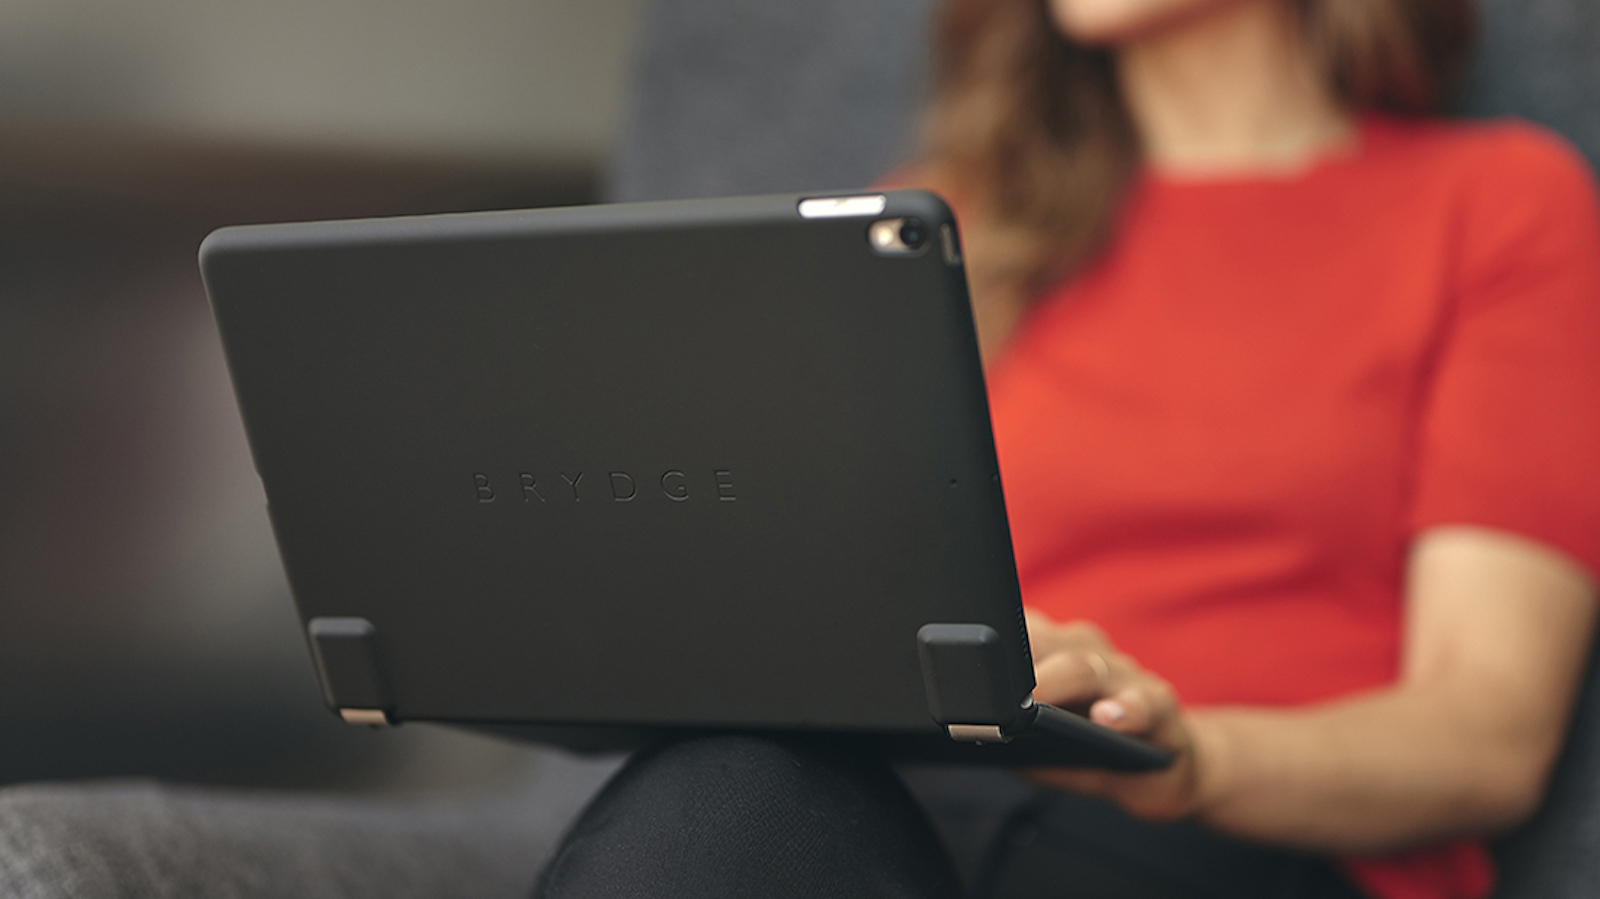 Brydge Protective Cases for iPad Pro protects your device and boasts a slimline profile